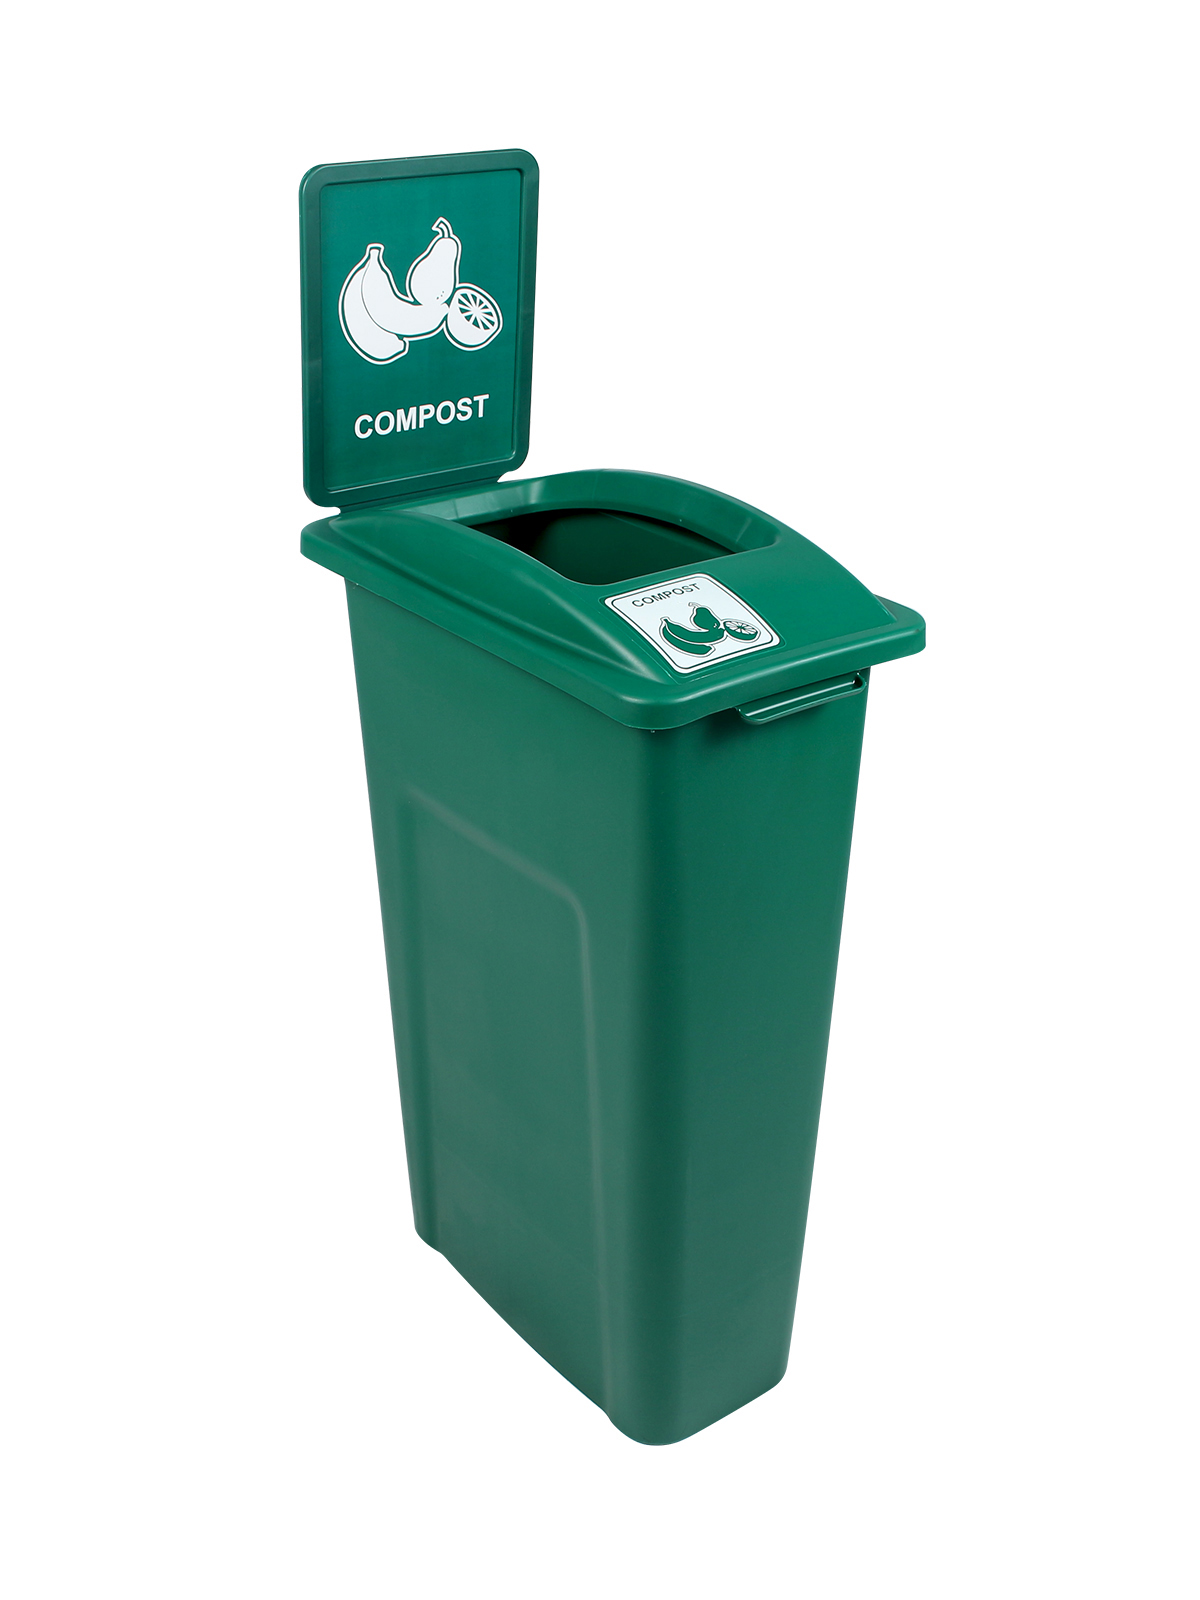 KIT WW 30 SINGLE - BDY/LID/SF - GRN COMPOST